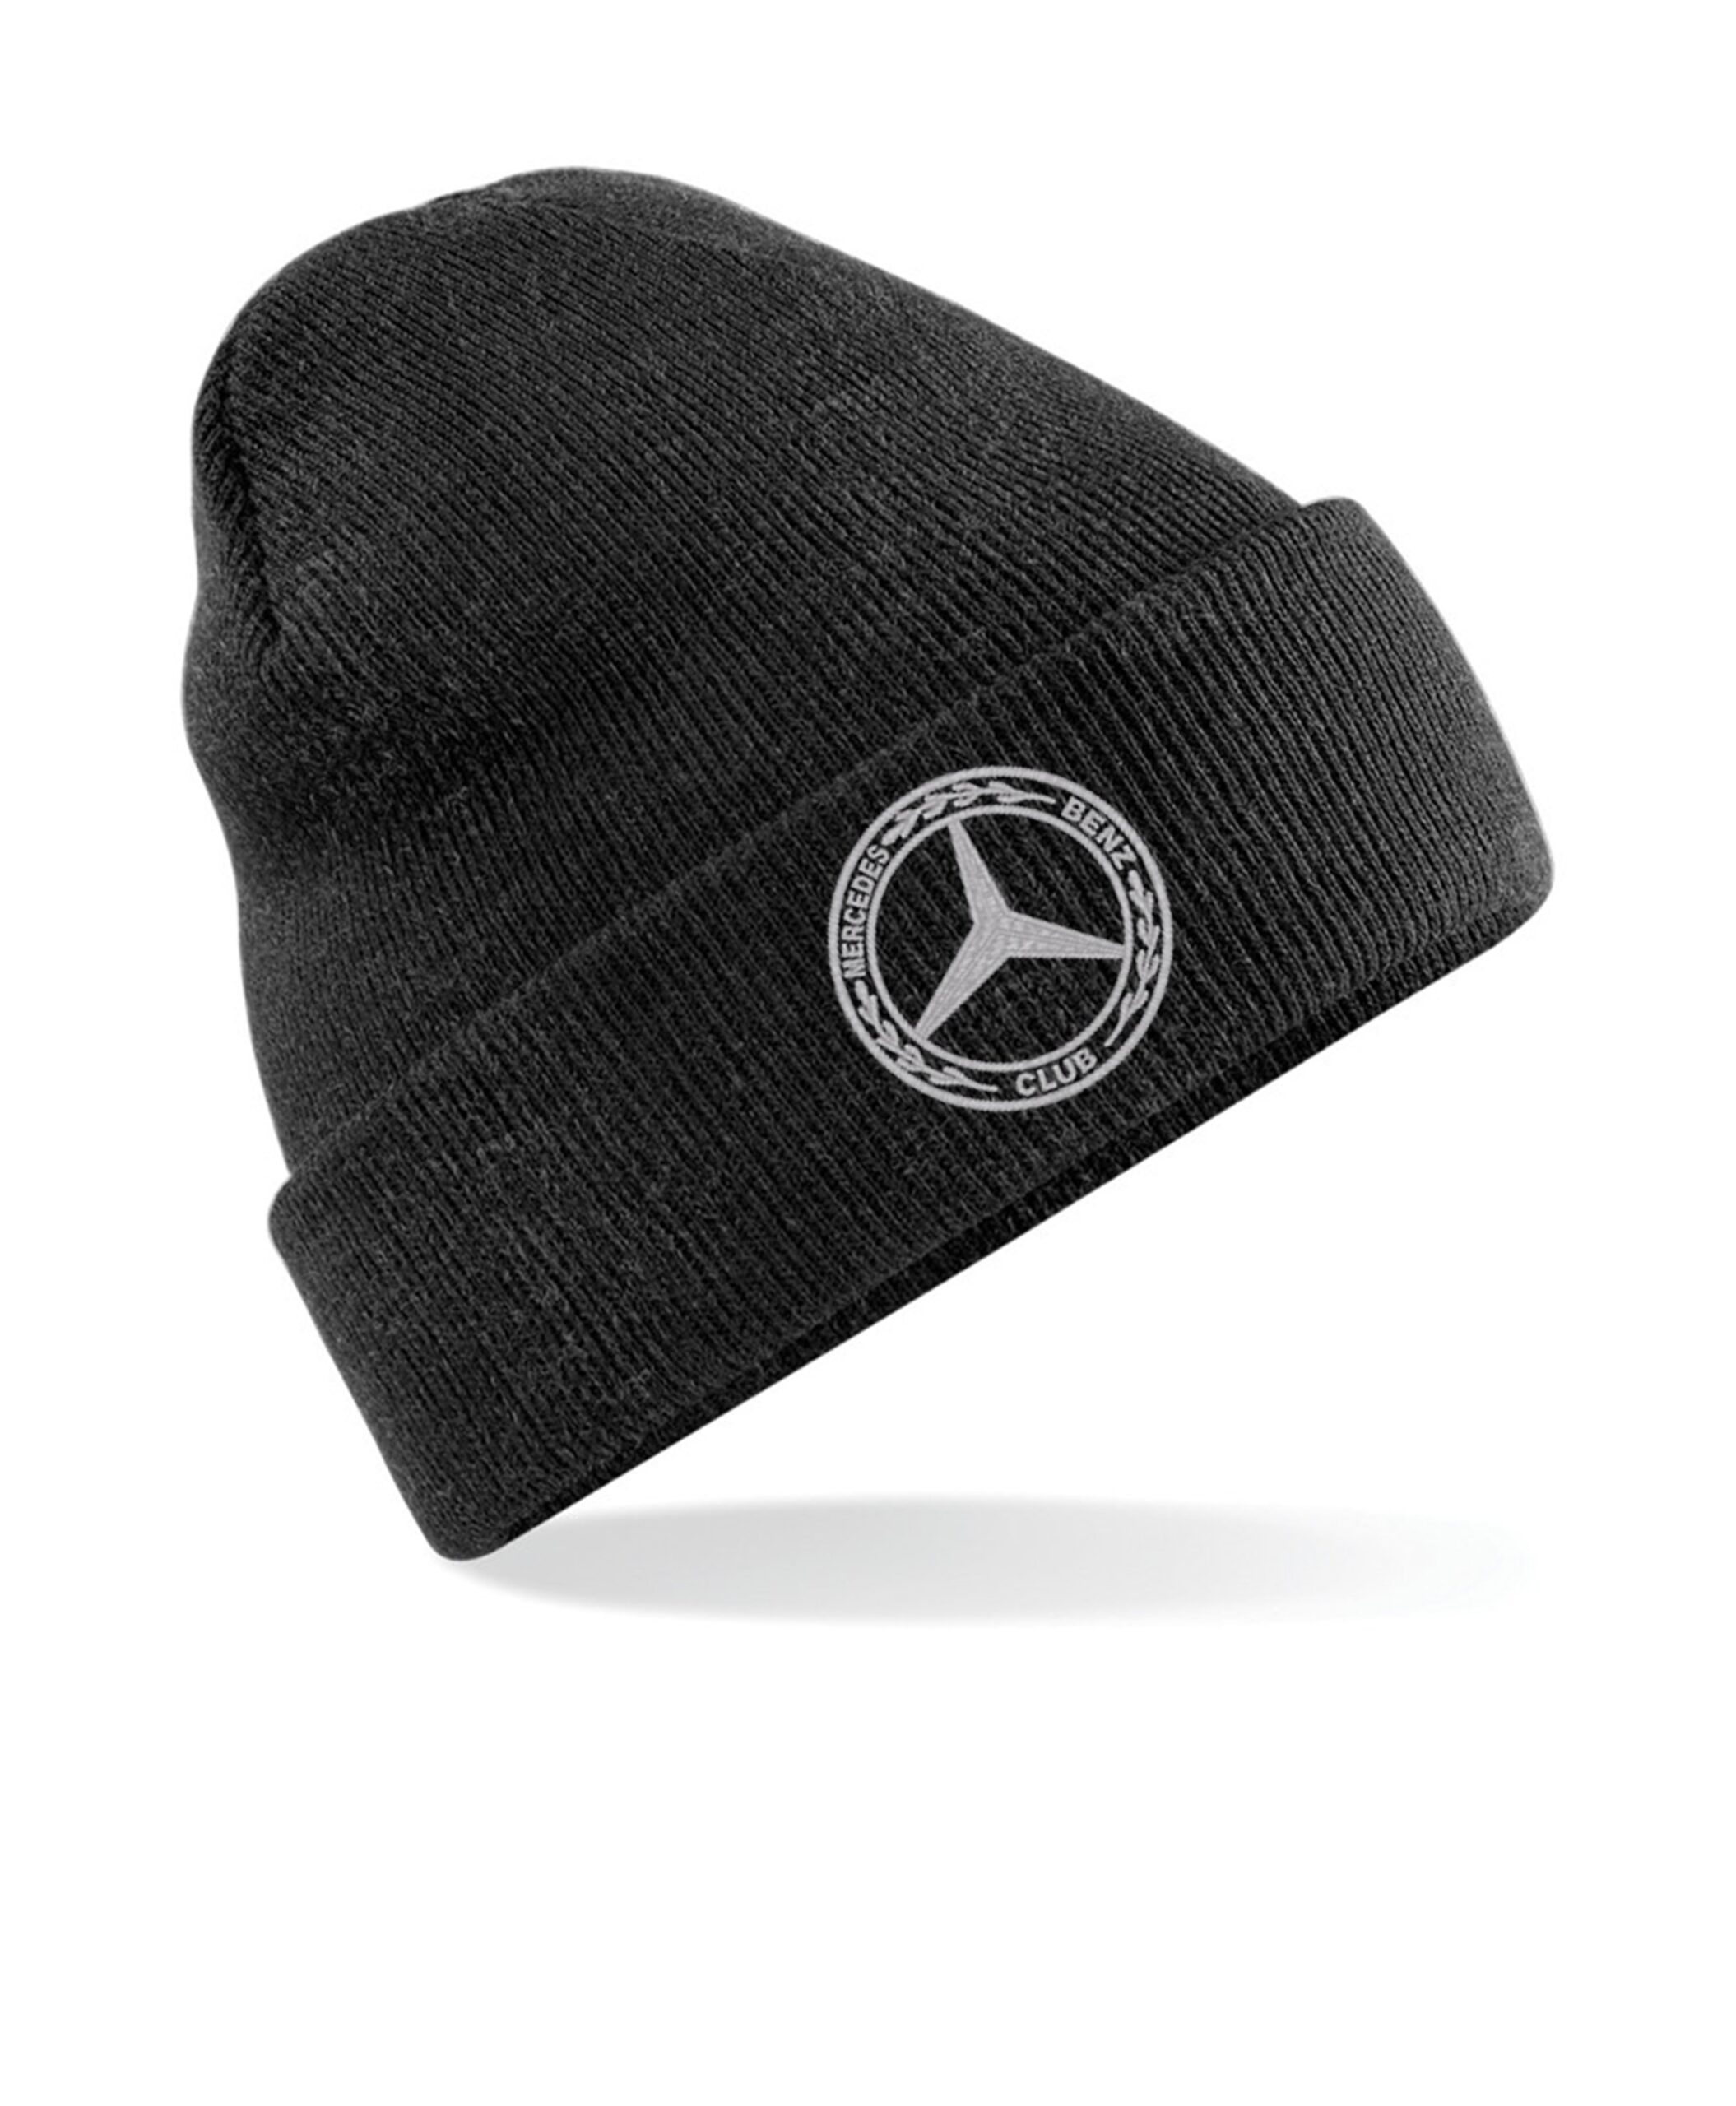 Mercedes-Benz Club Beanie Woolley Mens Womens Hat Charcoal